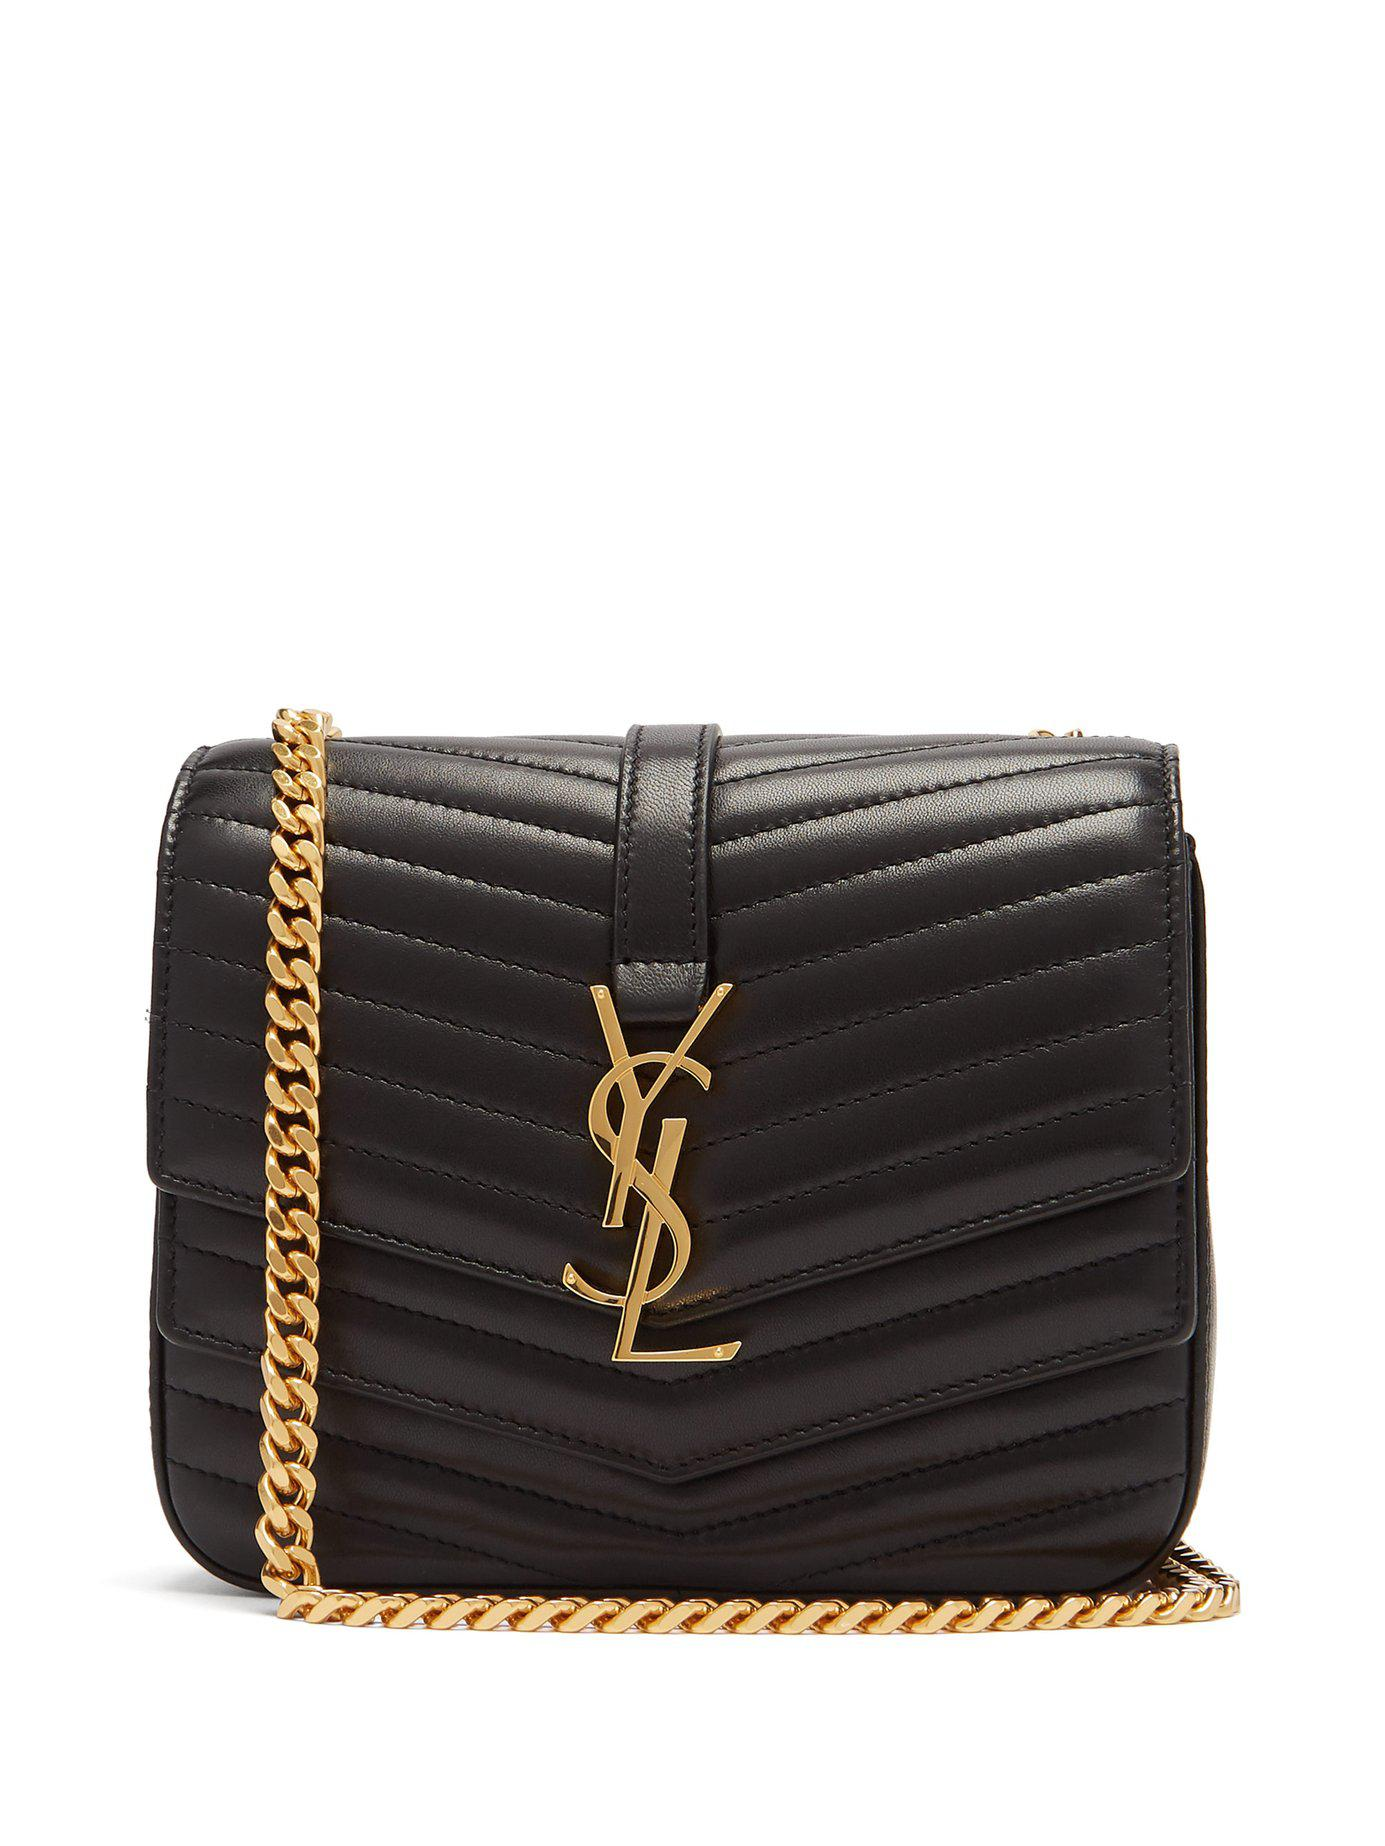 e6347786675a Lyst - Saint Laurent Sulpice Small Leather Bag in Black